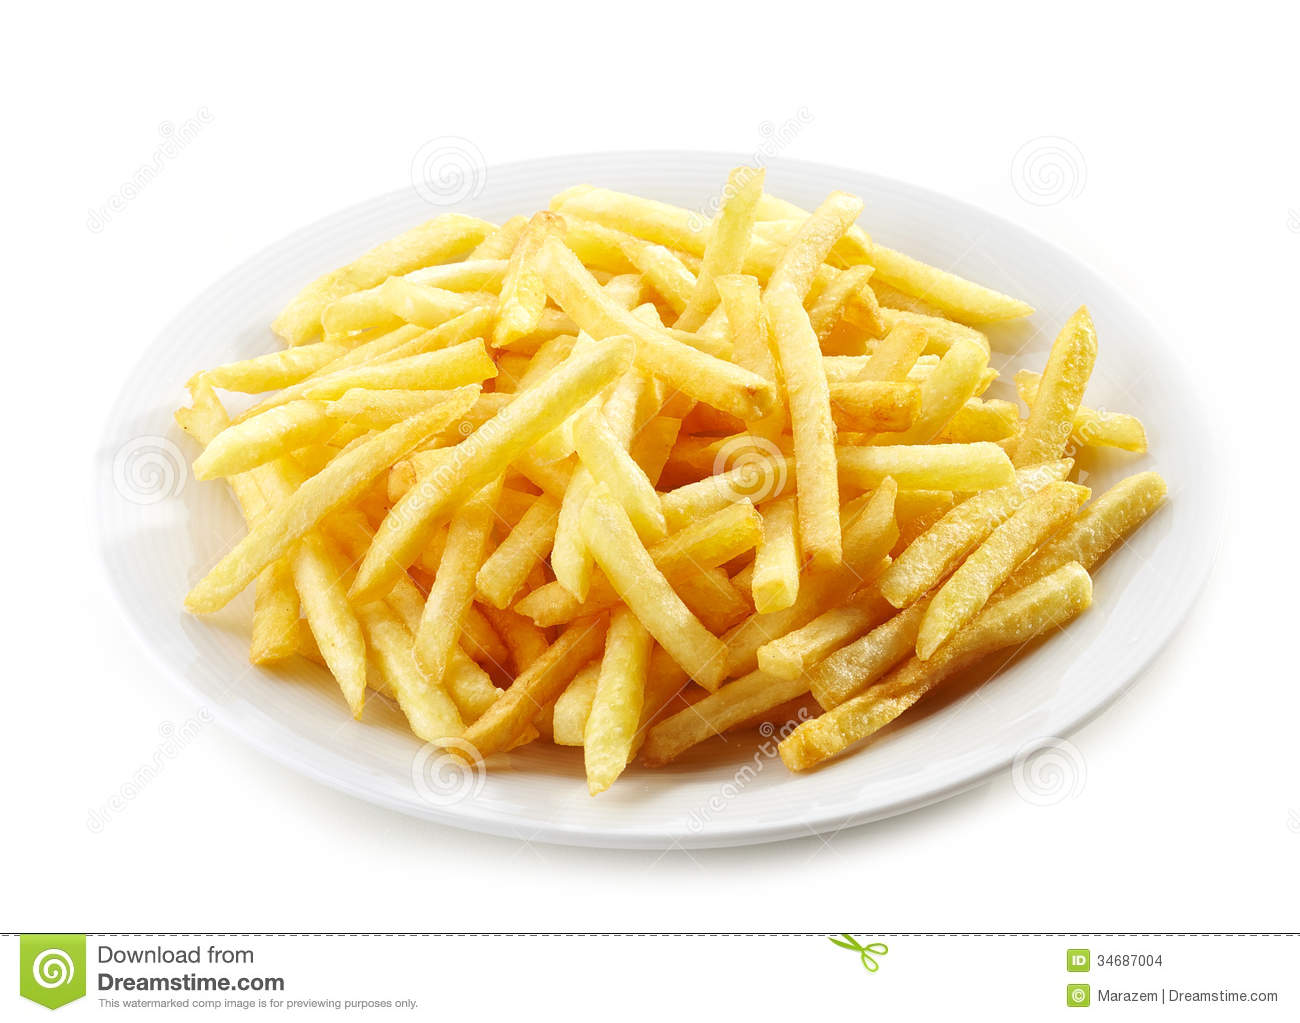 Plate Of French Fries Stock Images - Image: 34687004